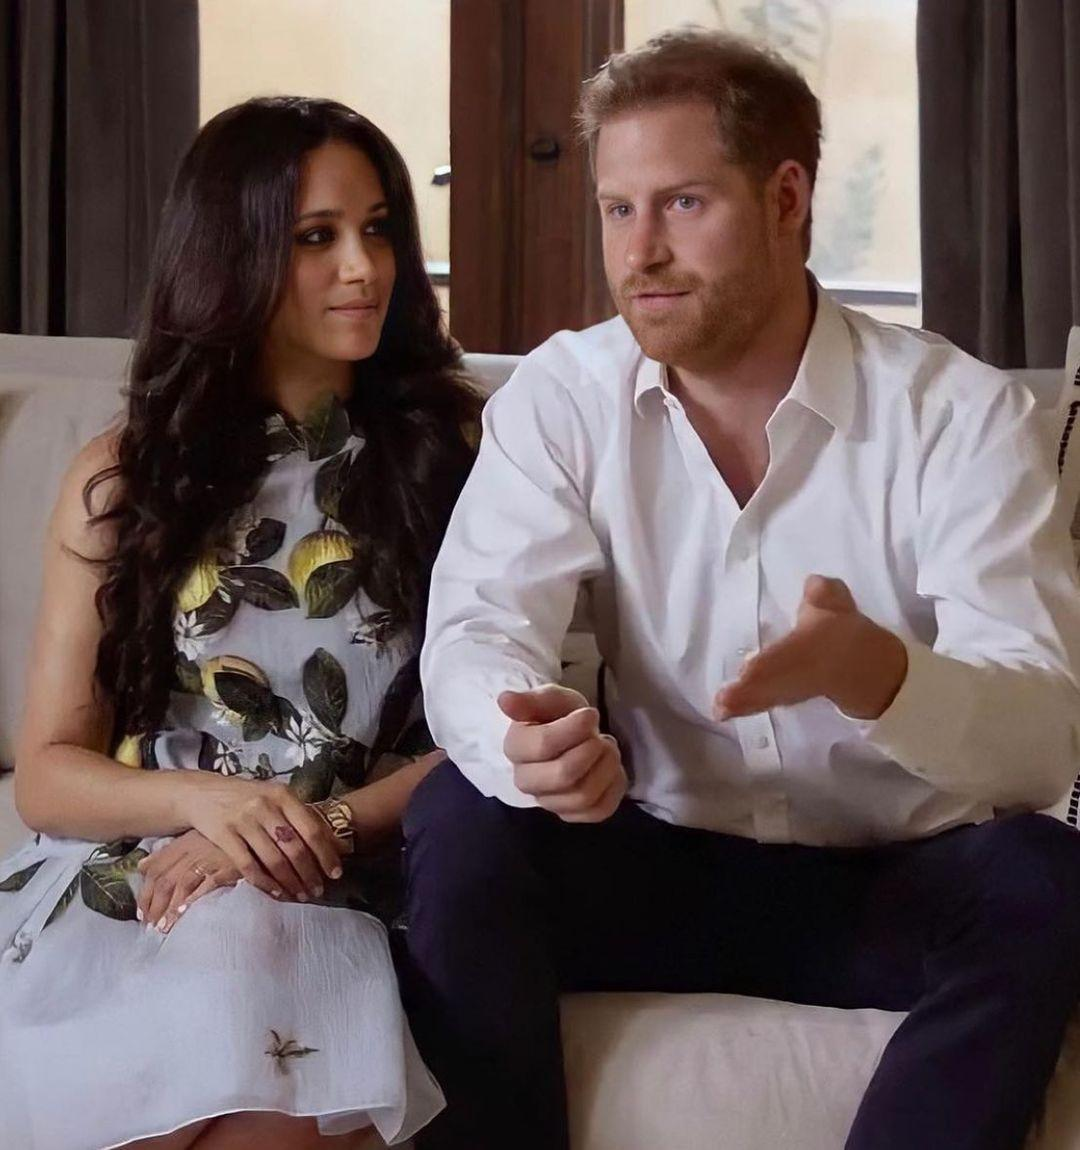 Prince Harry and Meghan Markle's interview